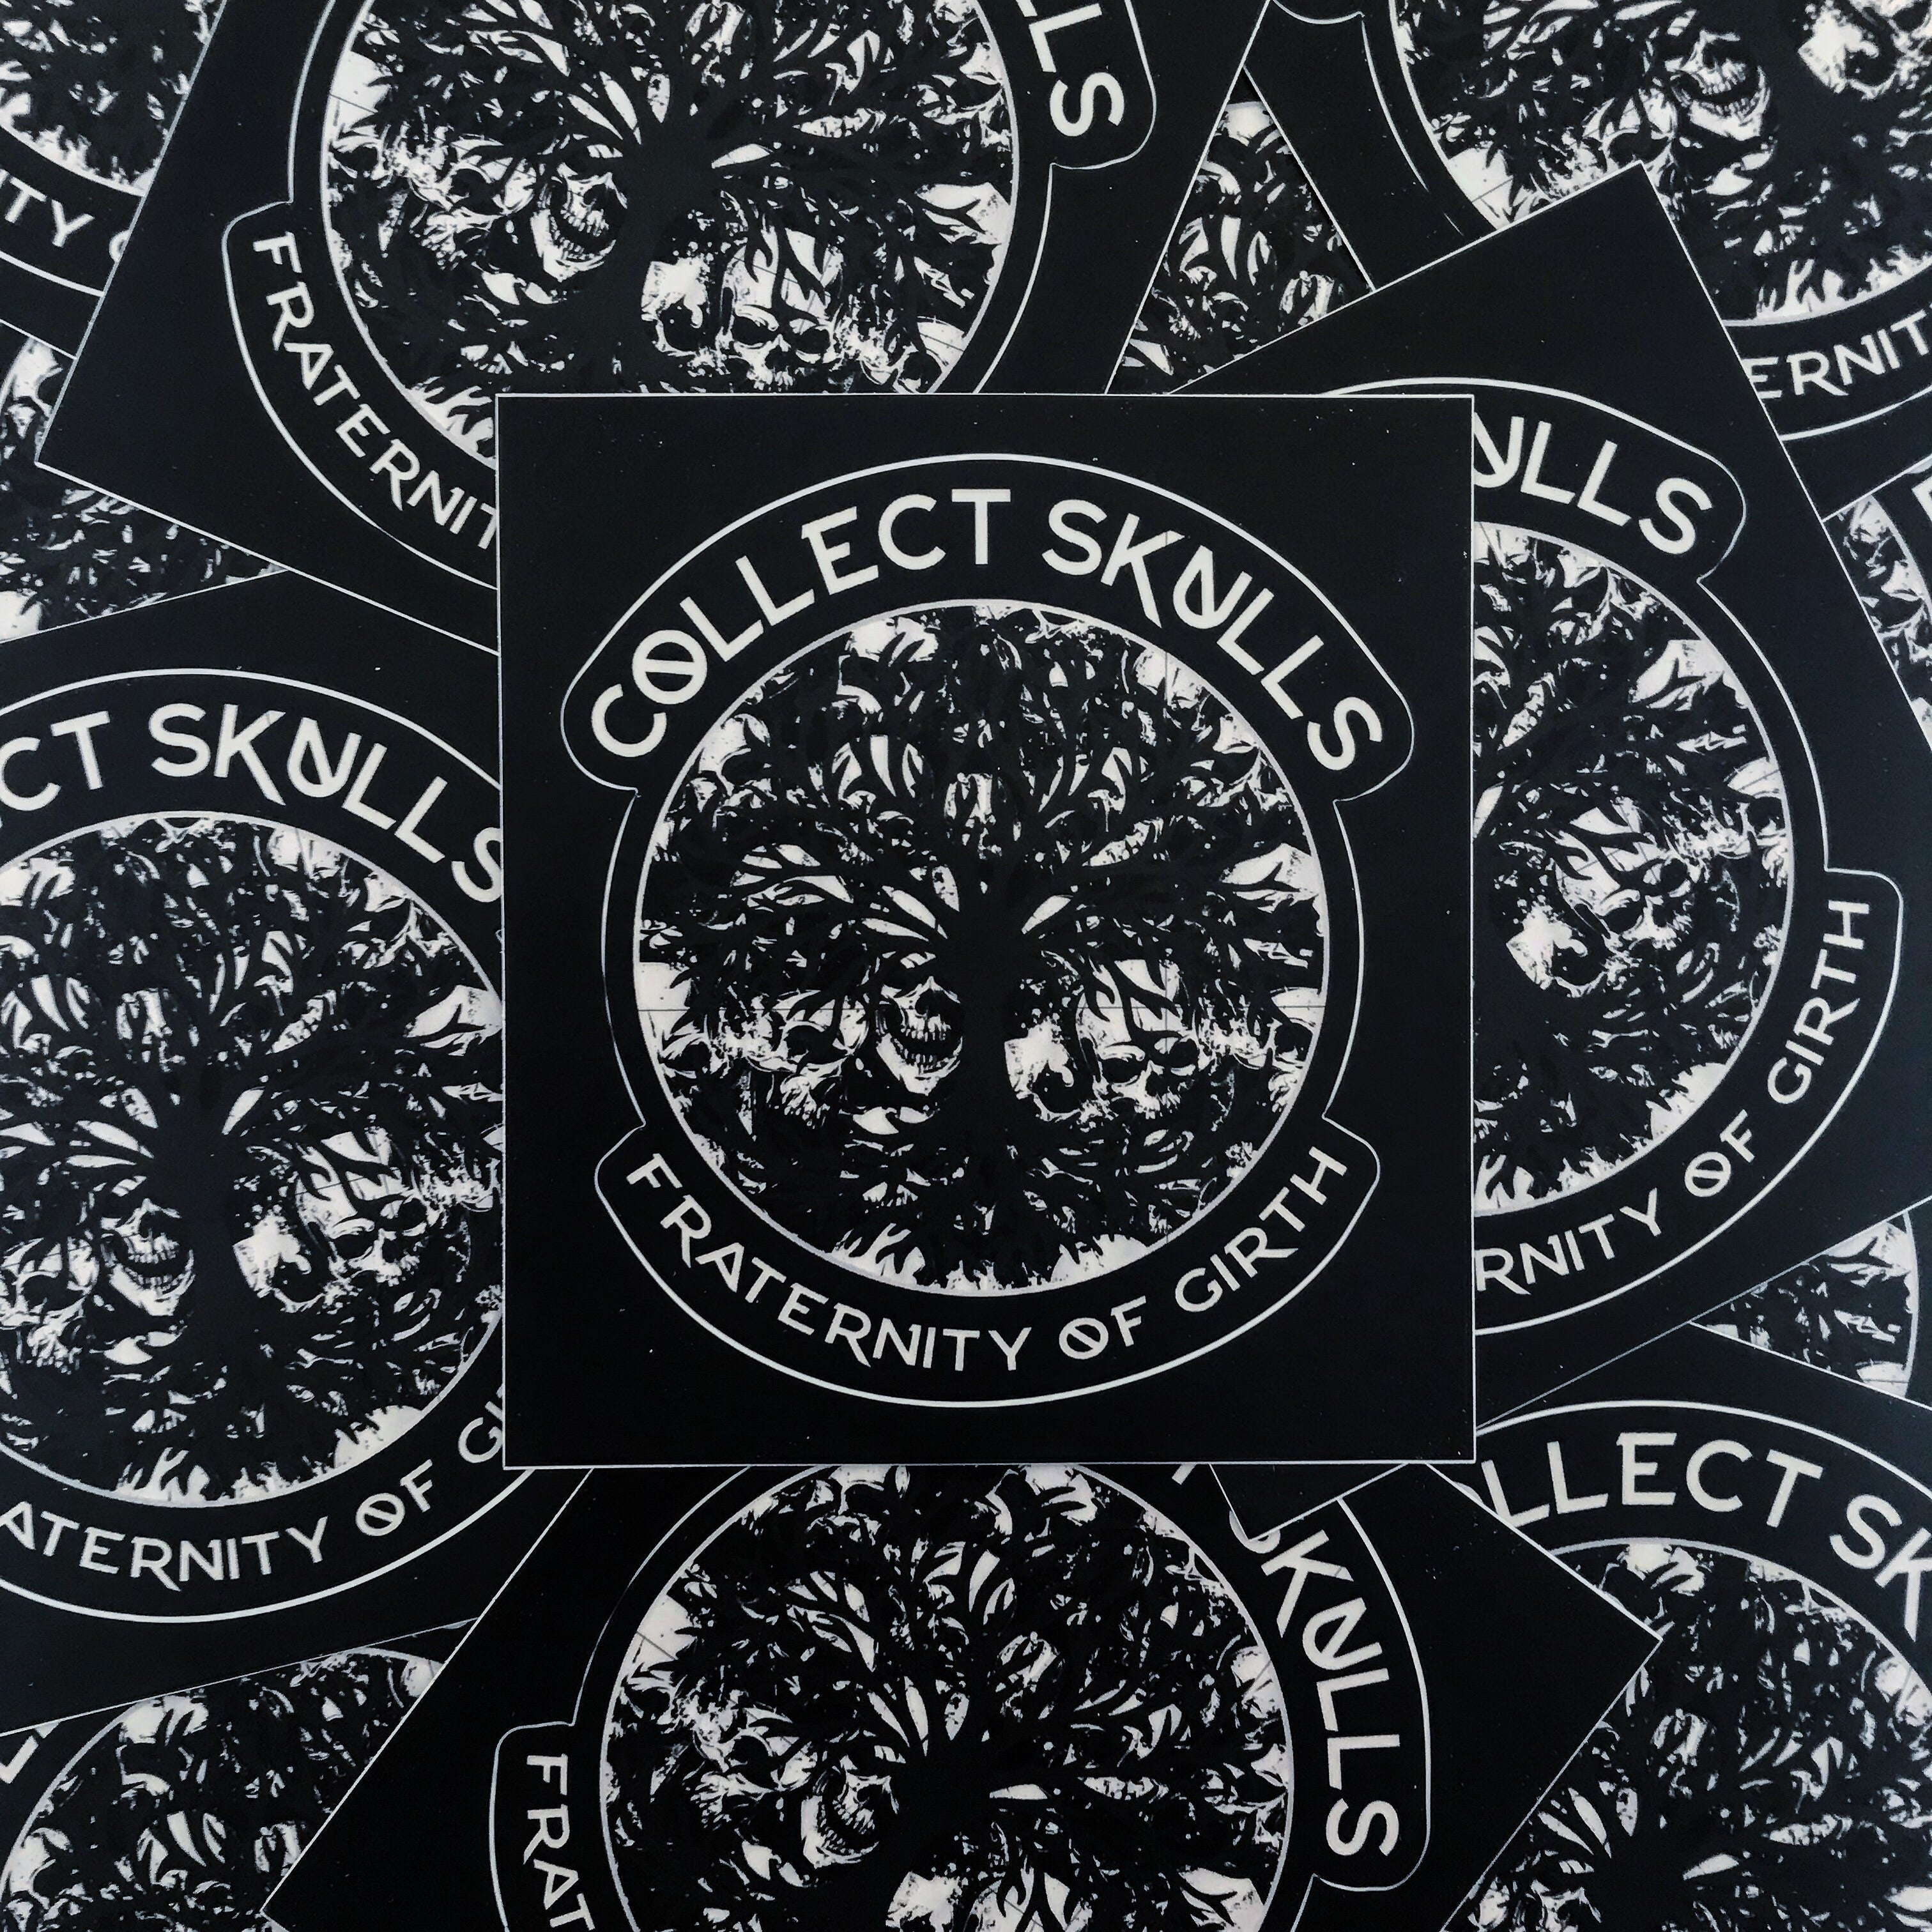 """COLLECT SKULLS"" STICKER (3.7""x4"")"